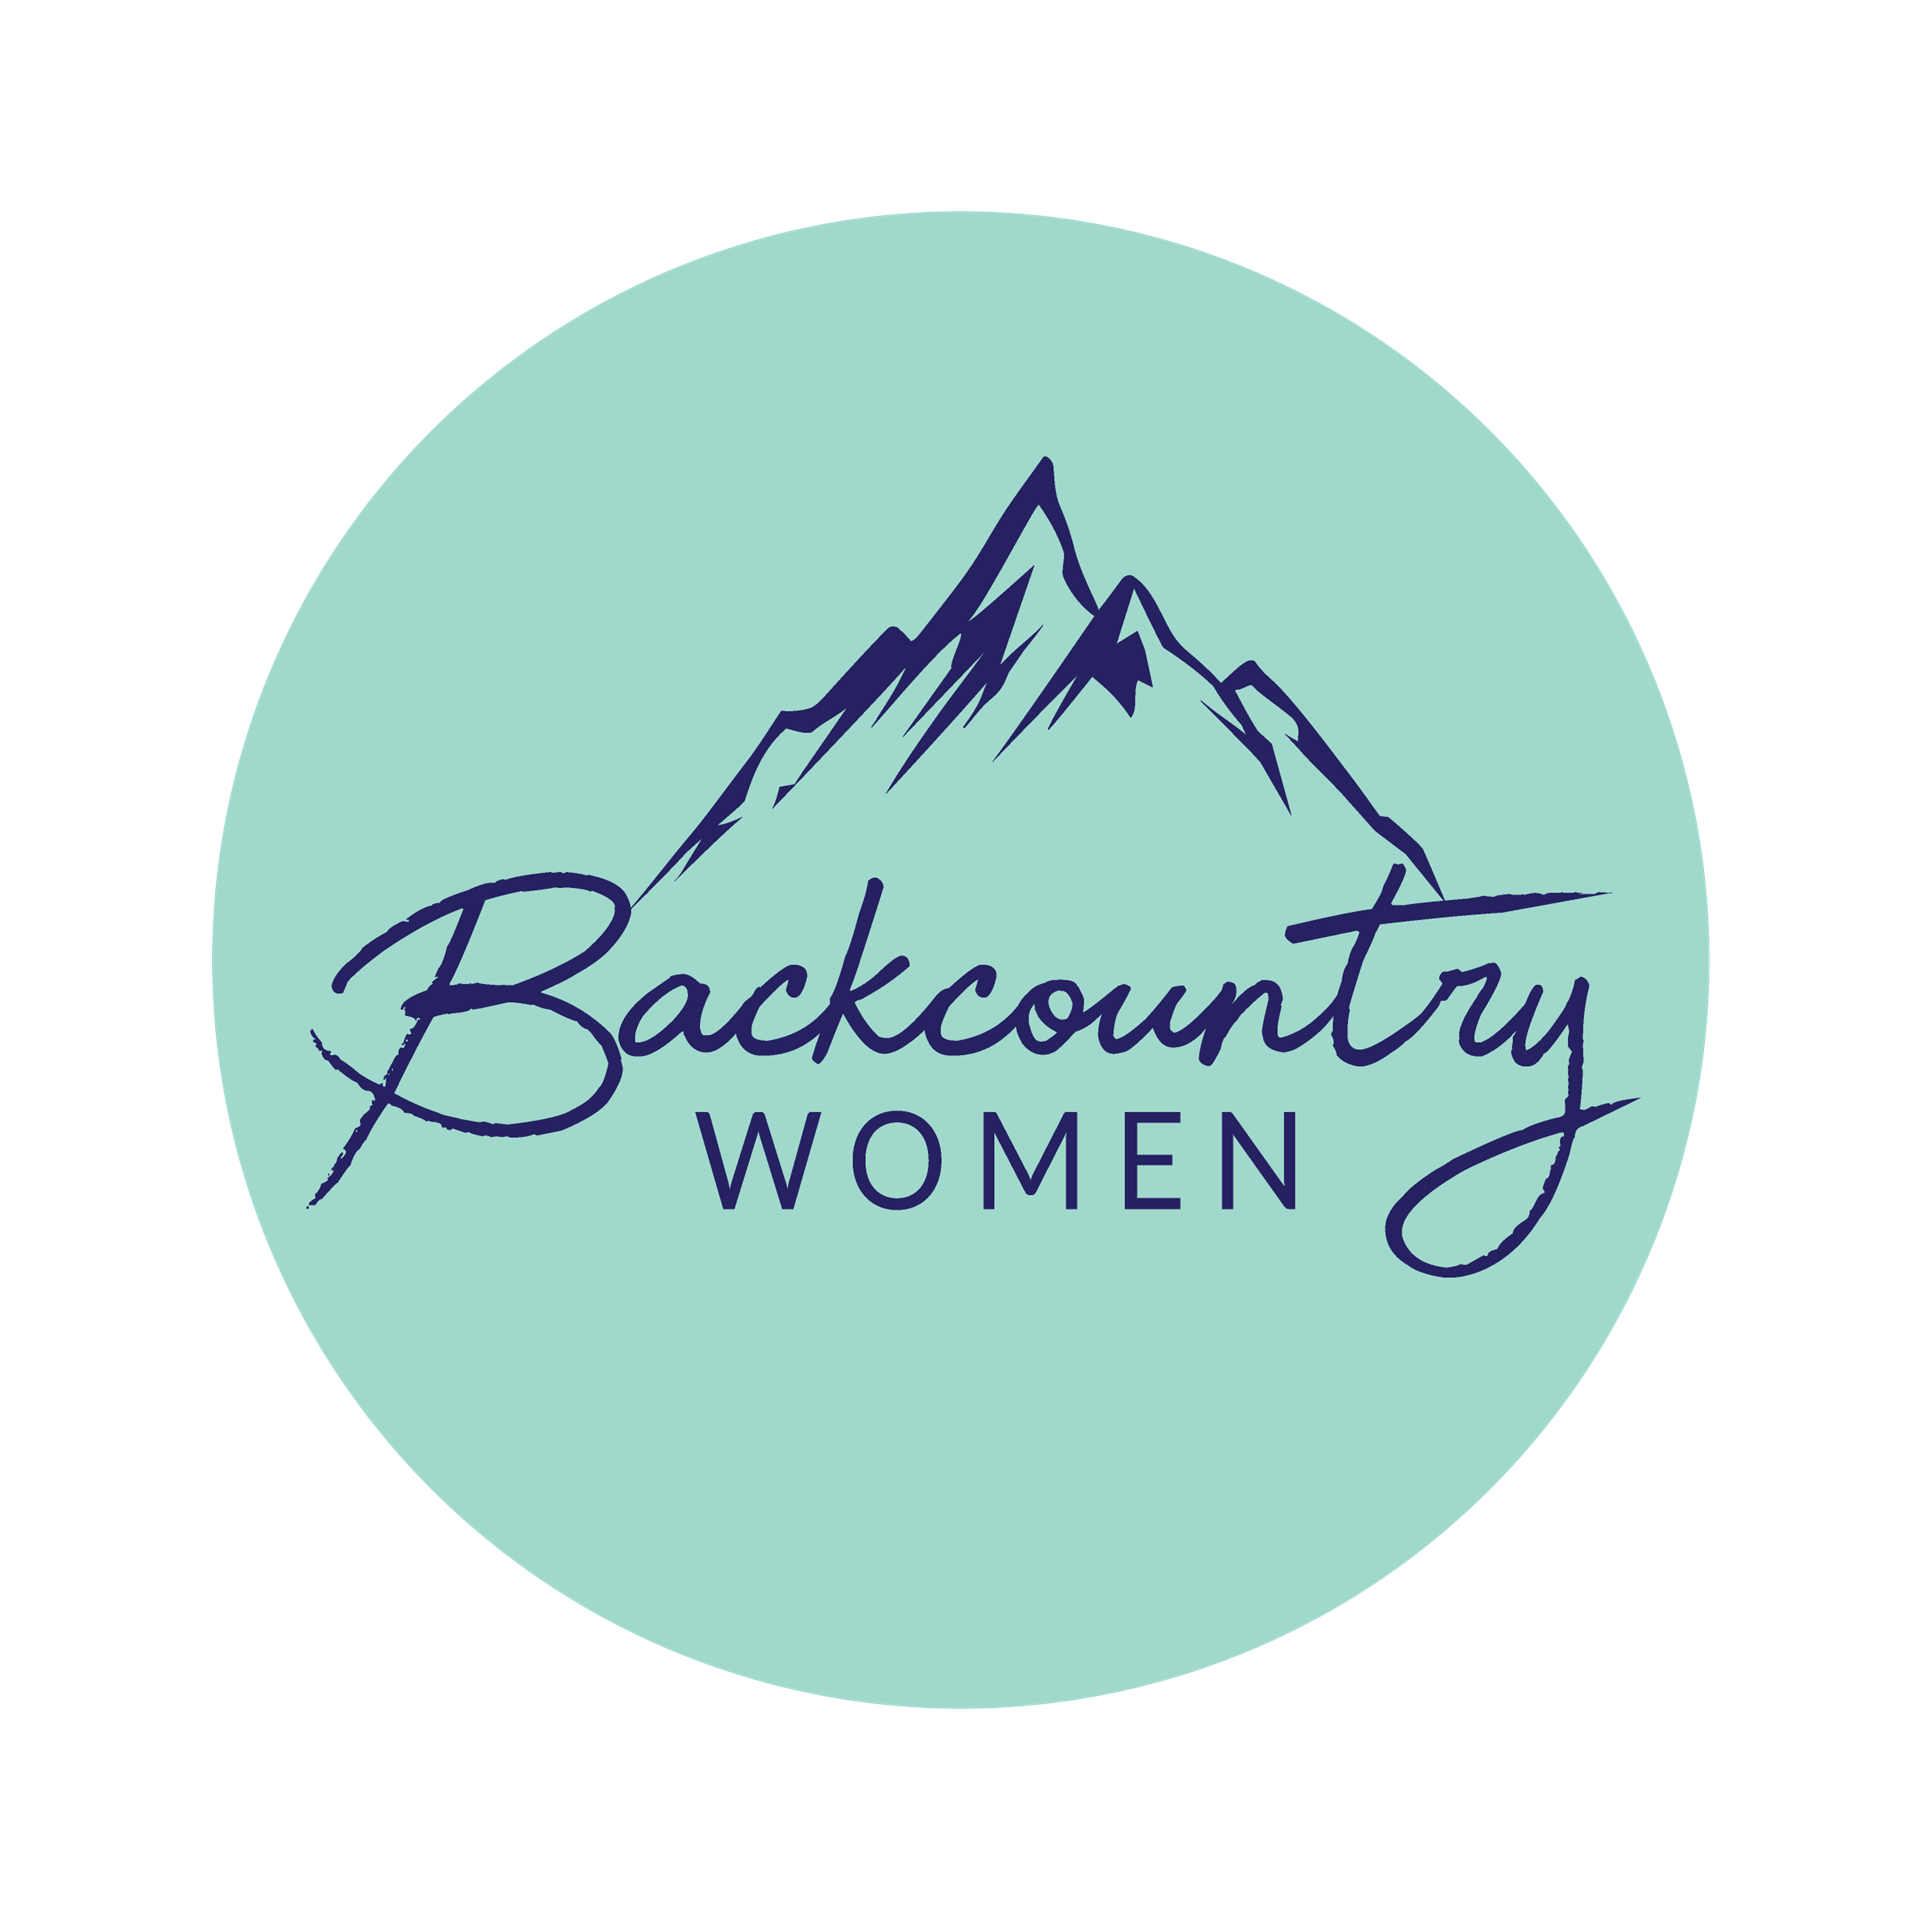 Backcountry Women